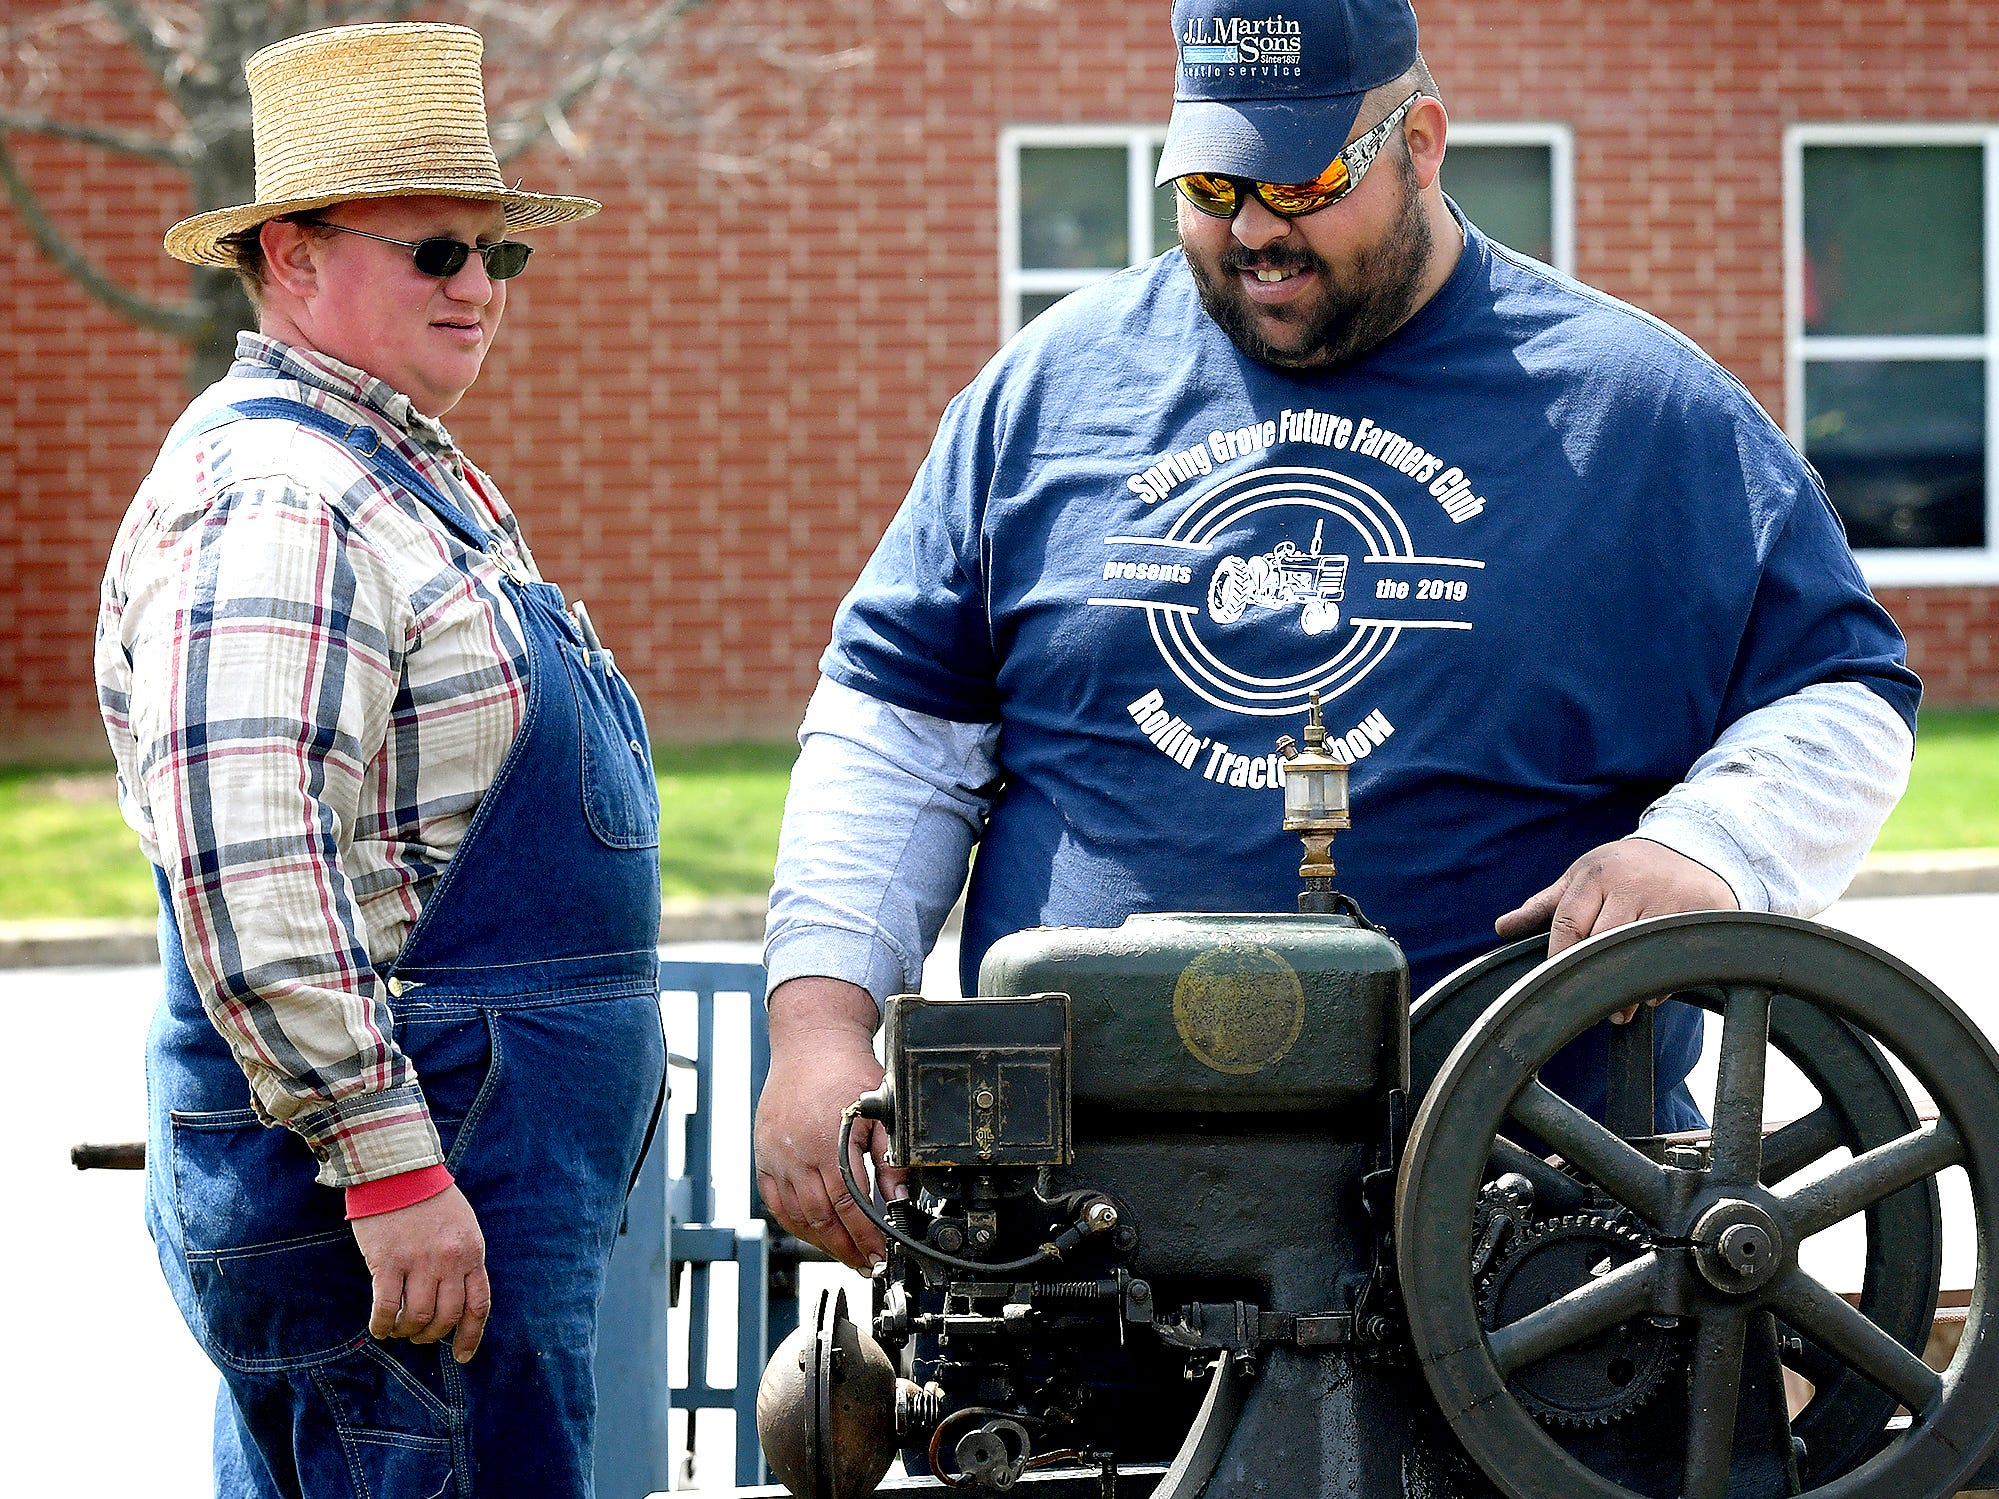 Alumni and area residents brought farm equipment to display with the goal of acquainting students with the agriculture industry during the district's 6th Annual Rollin' Tractor Show Thursday, April 11, 2019. The show is presented by the Future Farmers Club. It featured a parade of equipment and visited the intermediate and elementary schools. Bill Kalina photo